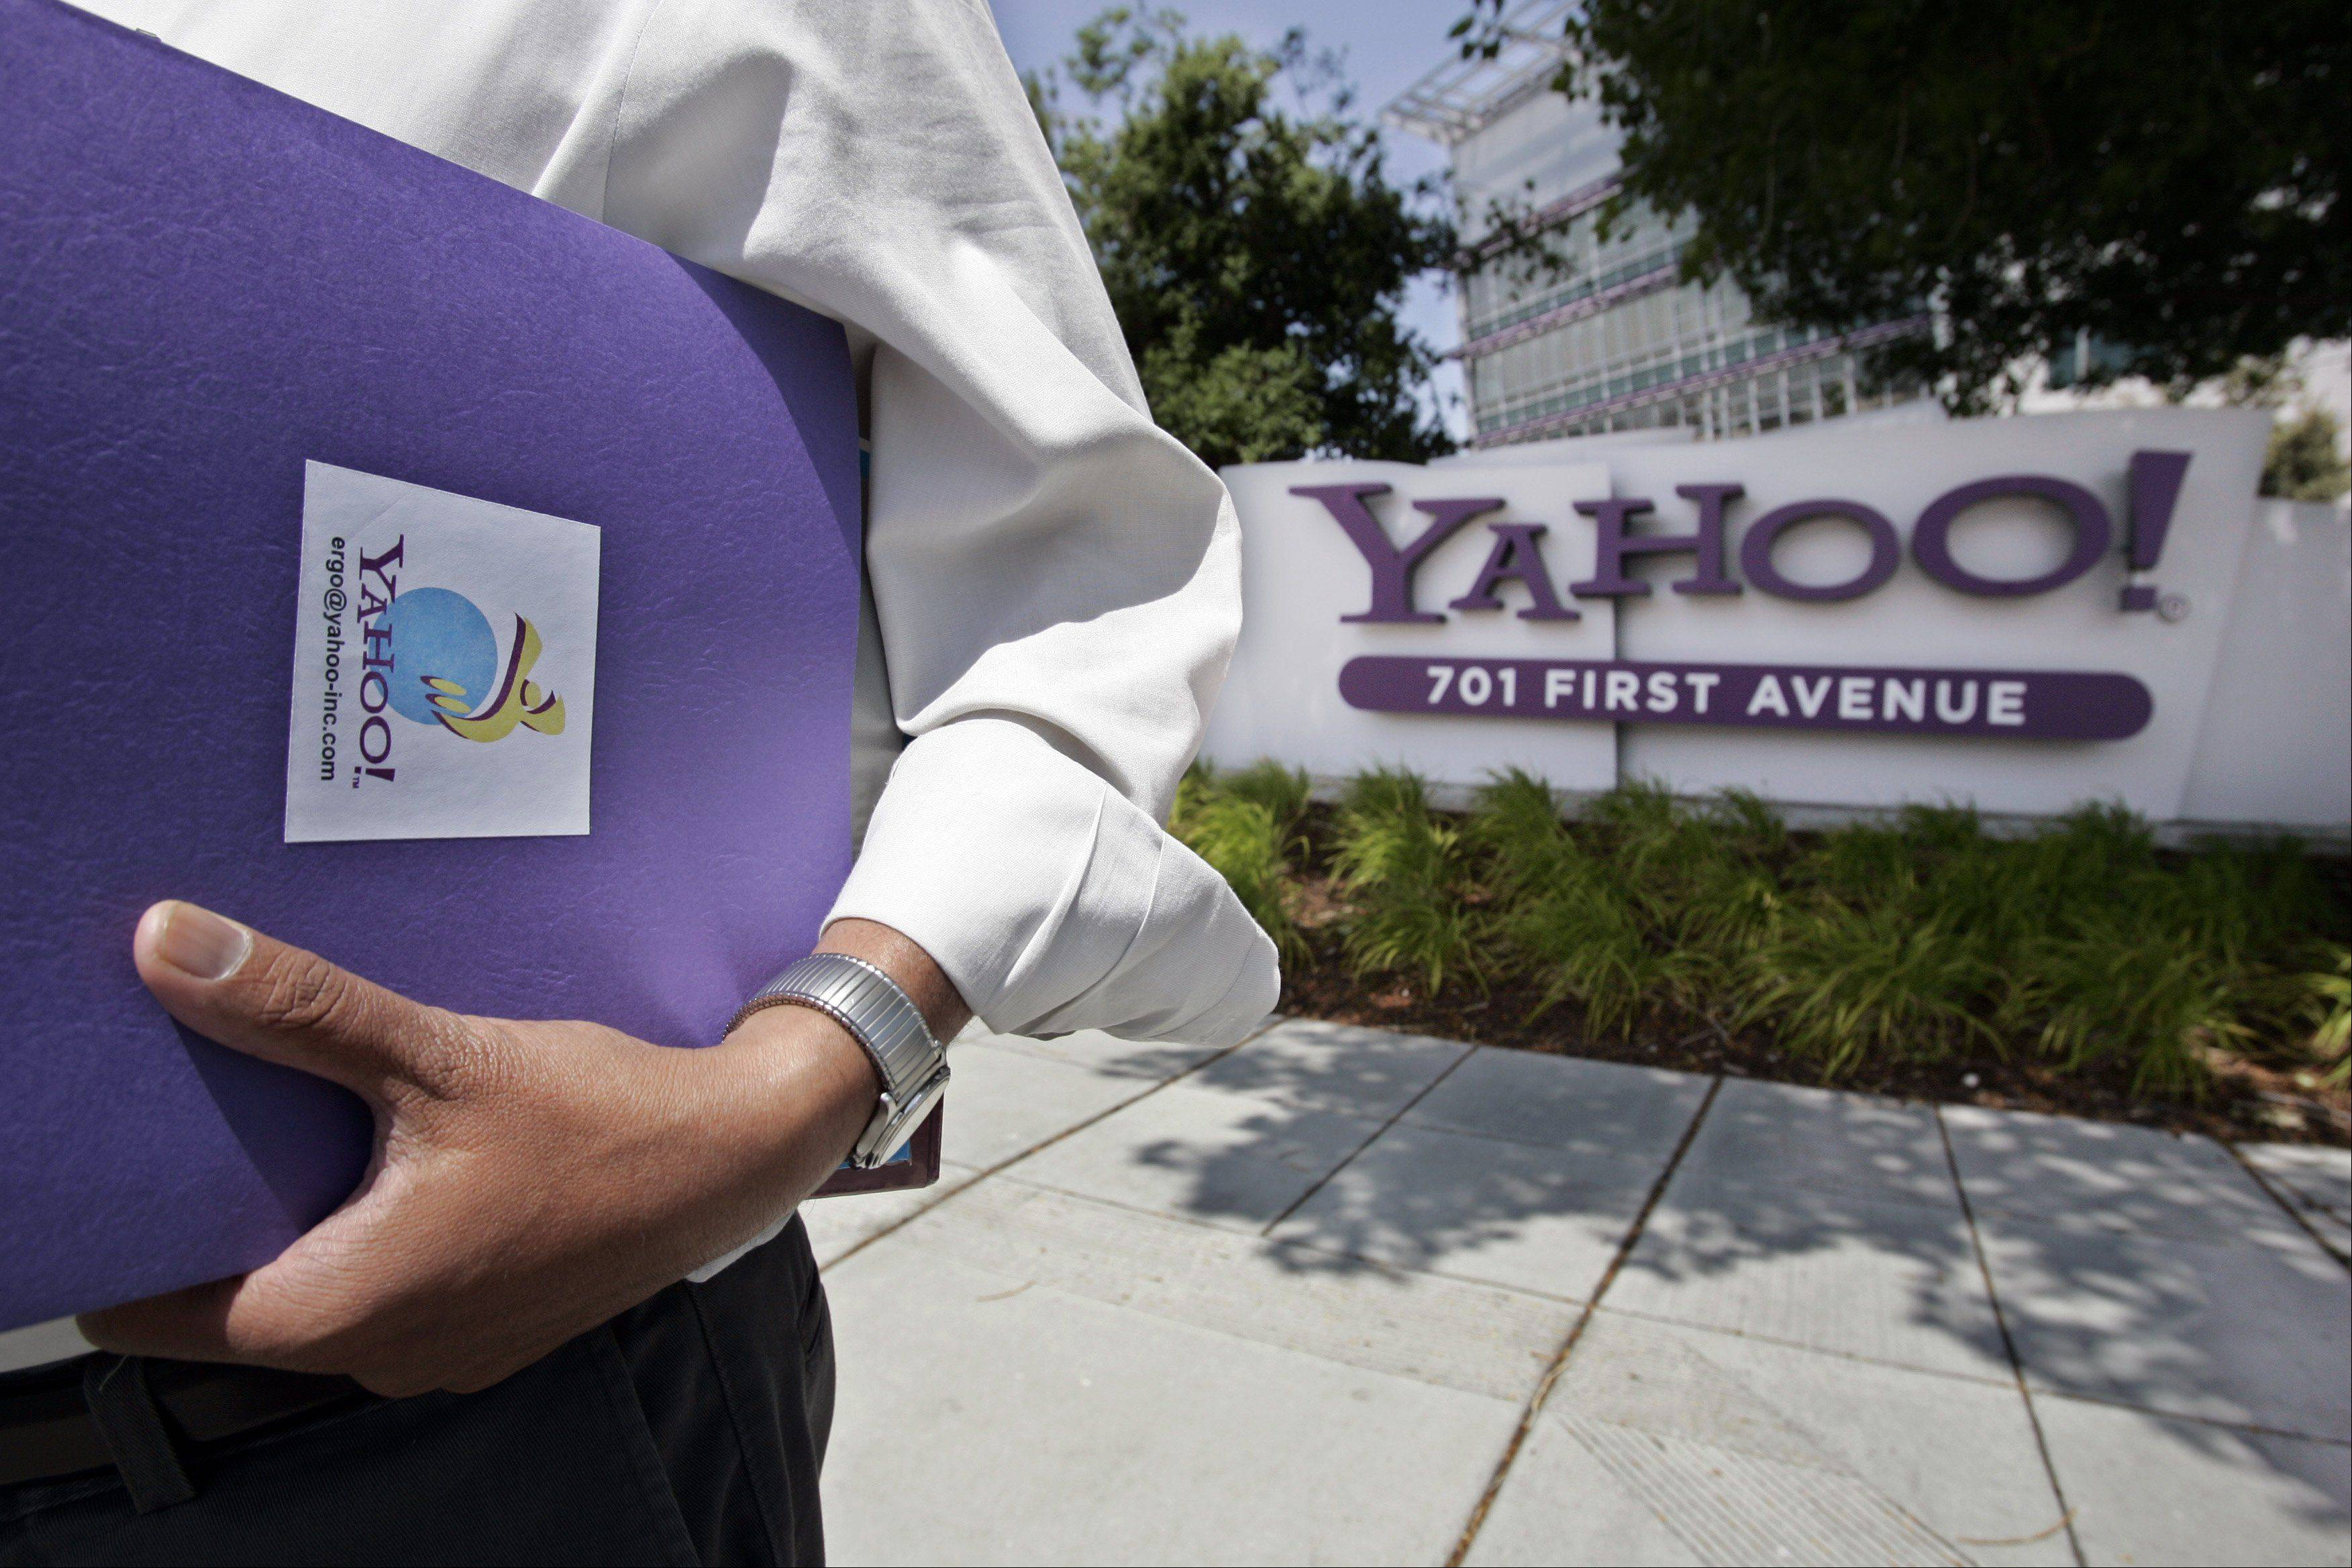 Yahoo Inc. says it's investigating reports of a security breach that has purportedly exposed nearly half a million users' email addresses and passwords.